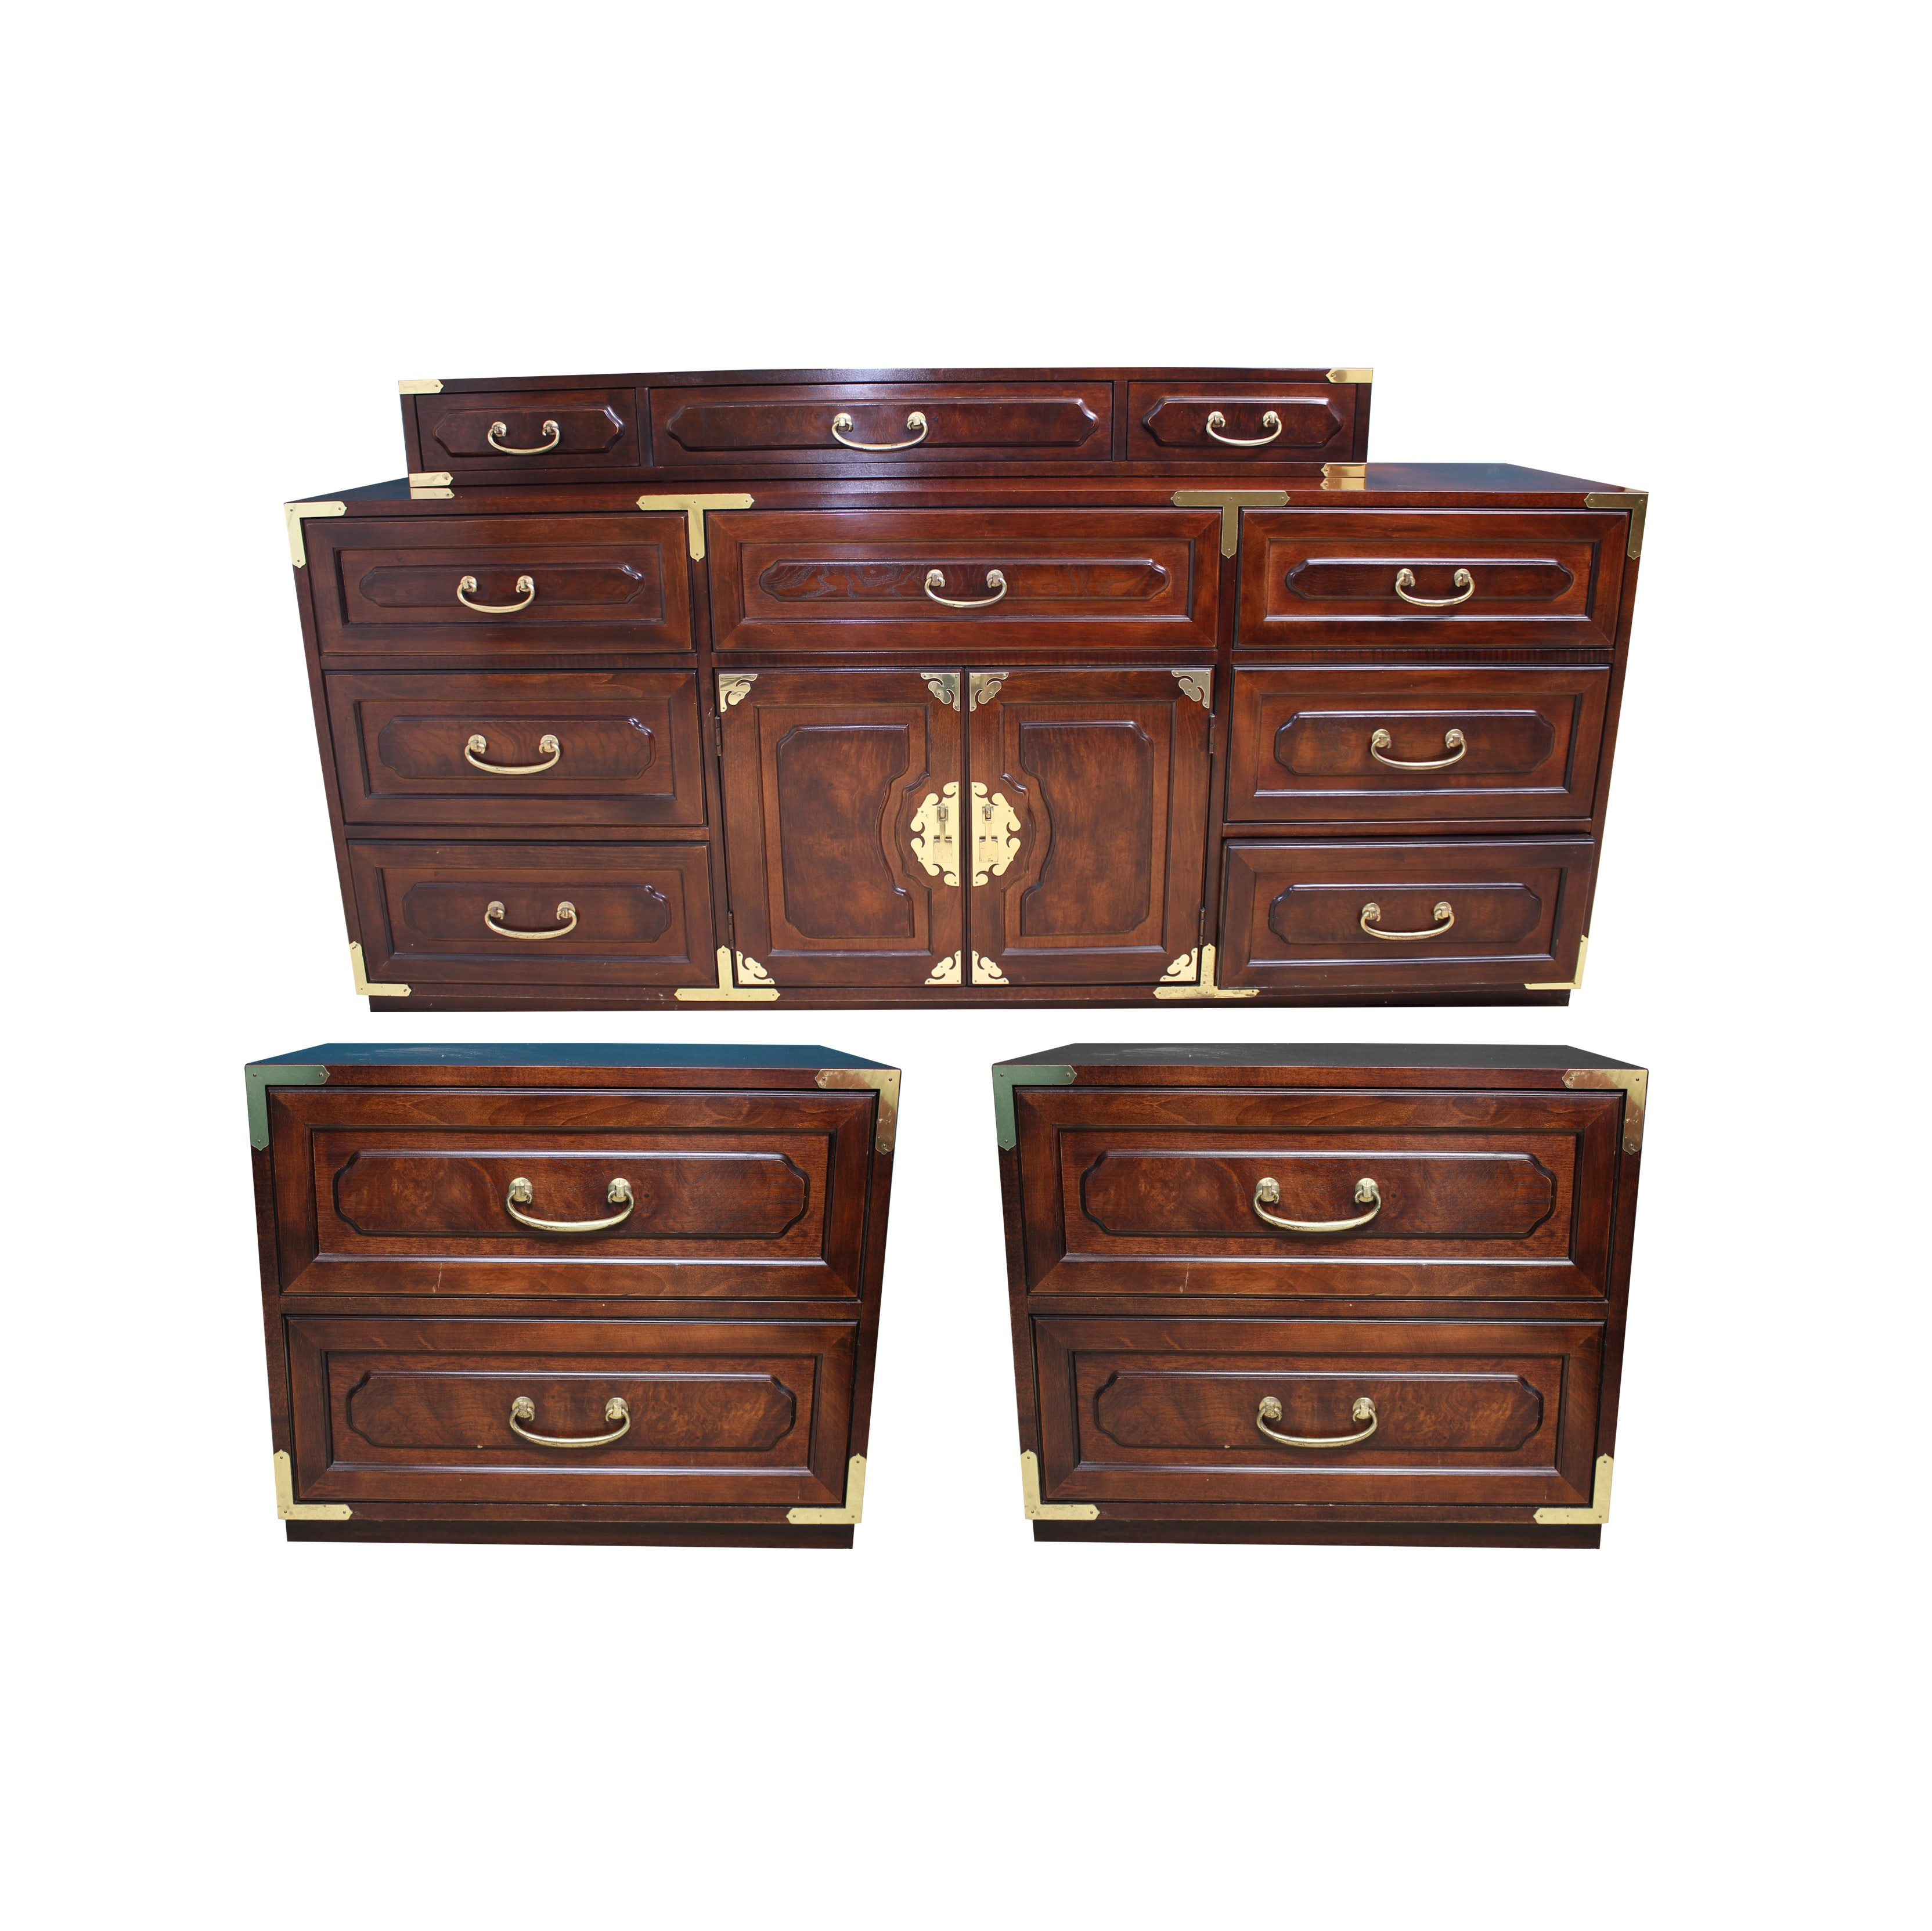 Hollywood Regency Style Dresser and Pair of Nightstands by Bernhardt